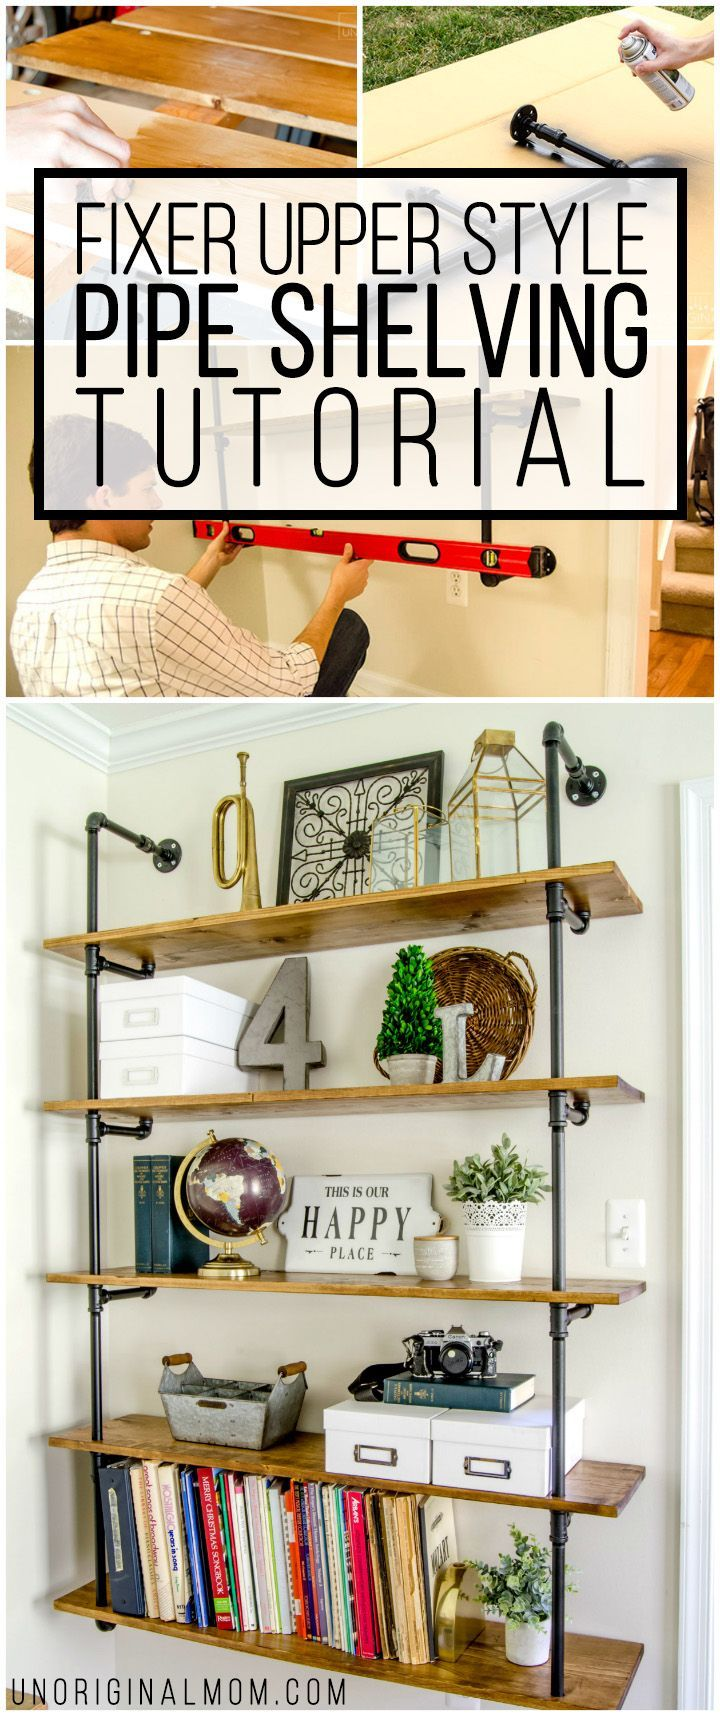 Really detailed step-by-step tutorial to make your own industrial pipe shelving - this is an affordable and fun way to get the Joanna Gaines Fixer Upper style in your own home! | fixer upper shelves | industrial pipe shelves | DIY pipe shelving tutorial | pipe shelves | industrial farmhouse office